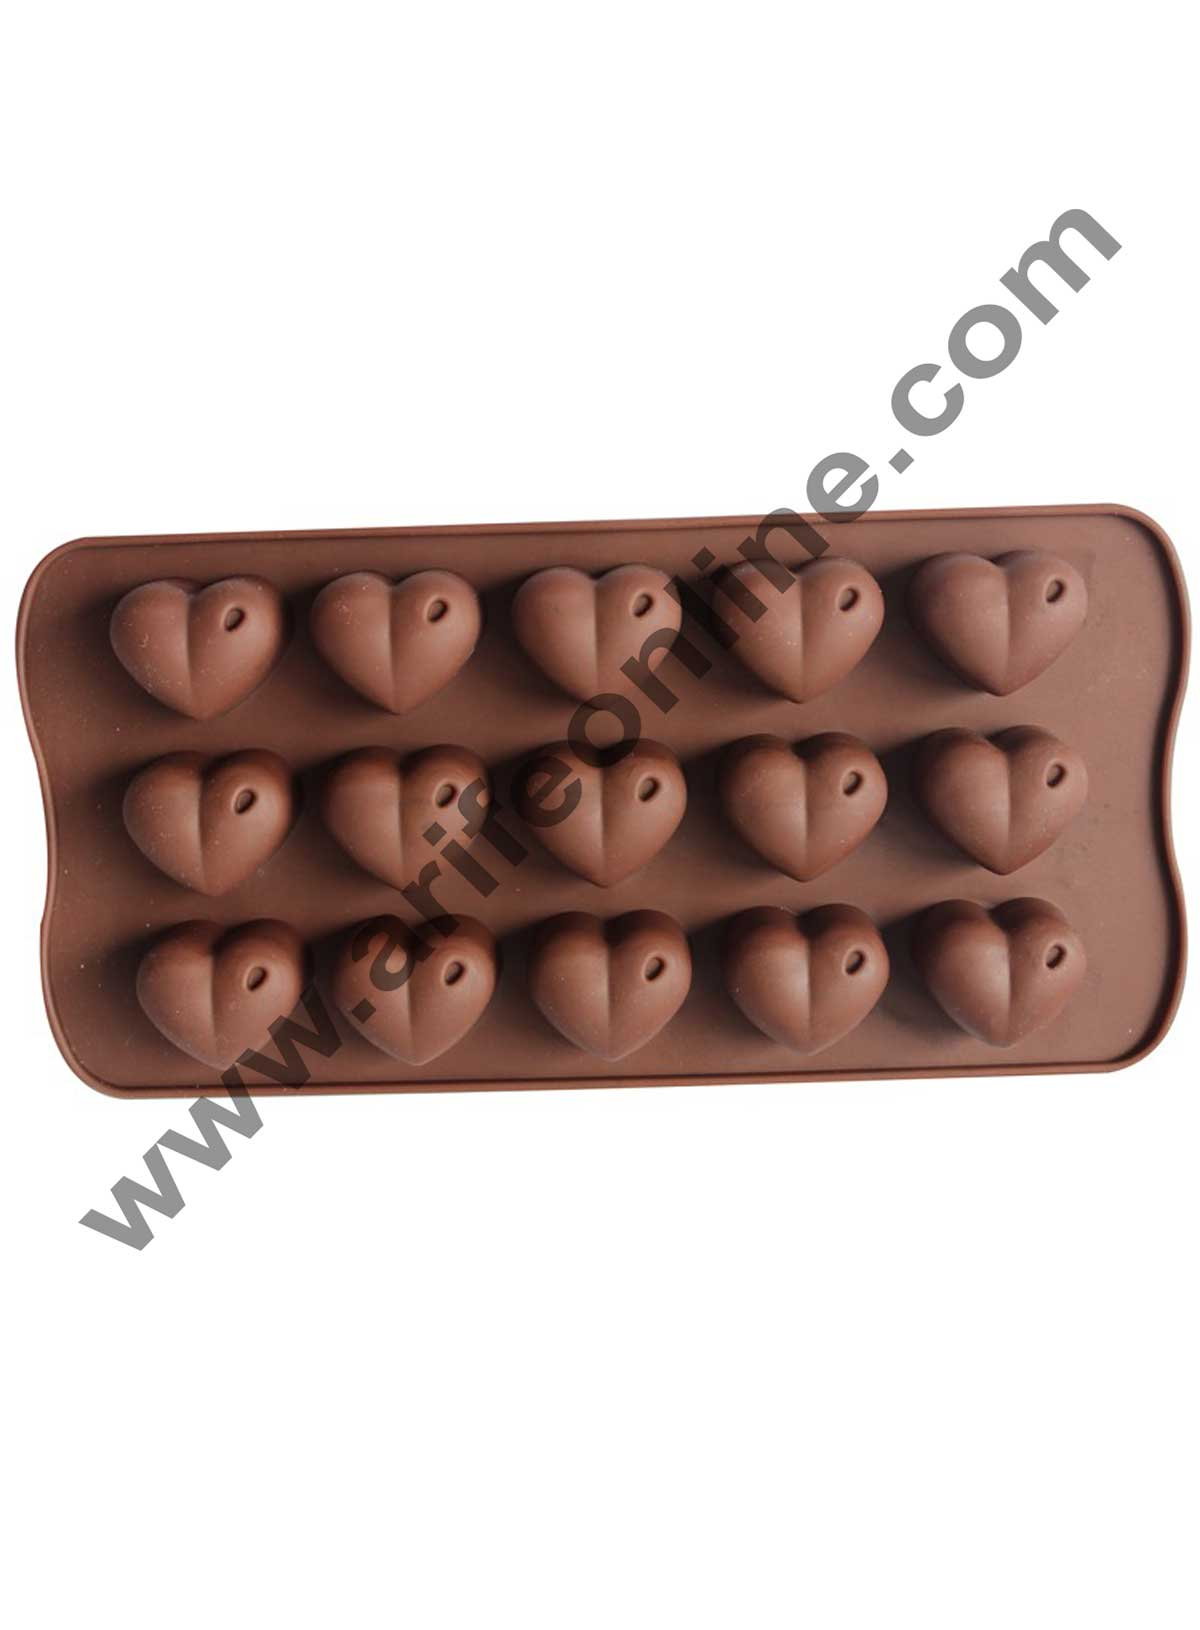 Cake Decor Silicon 15 Cavity Heart Design Brown Chocolate Mould, Ice Mould, Chocolate Decorating Mould